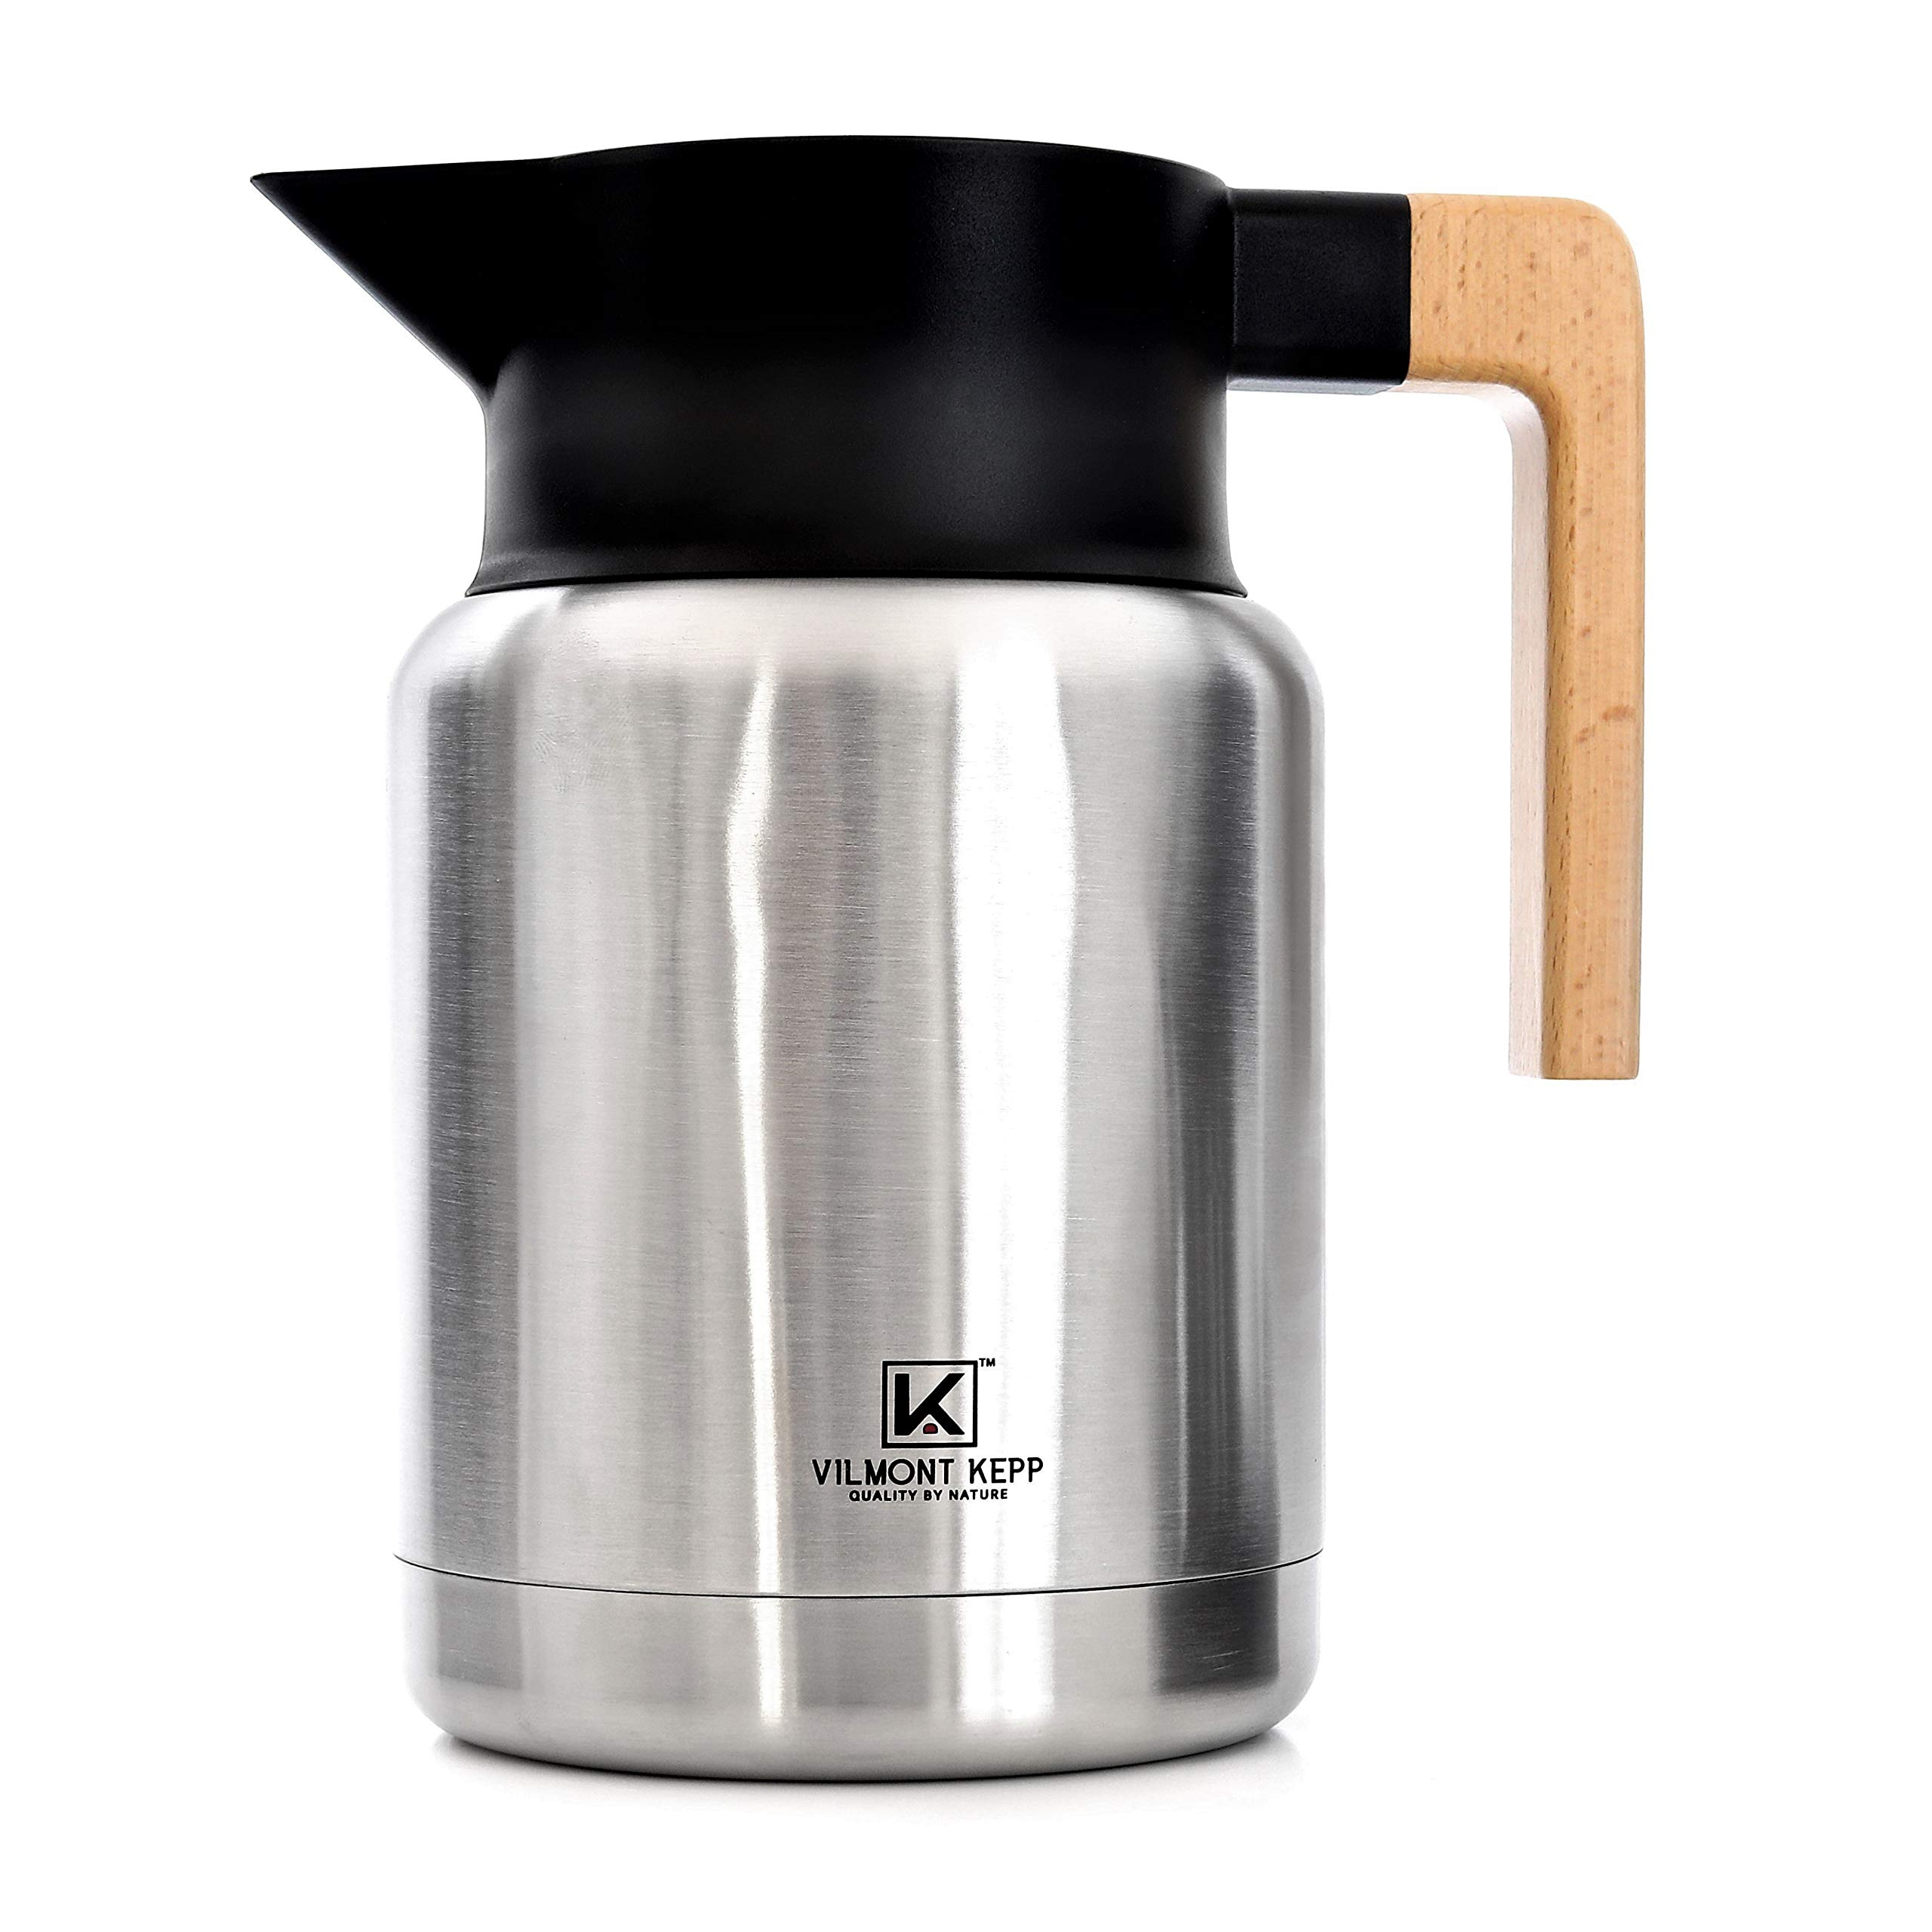 Vilmont Kepp Premium Large (50oz) Thermal Carafe for Coffee Tea or Cold Drinks, Sturdy Thermos Double Walled Stainless Steel Insulated Tea Pot, Home or Office, Gift Boxed, Beechwood Handle No-Drips